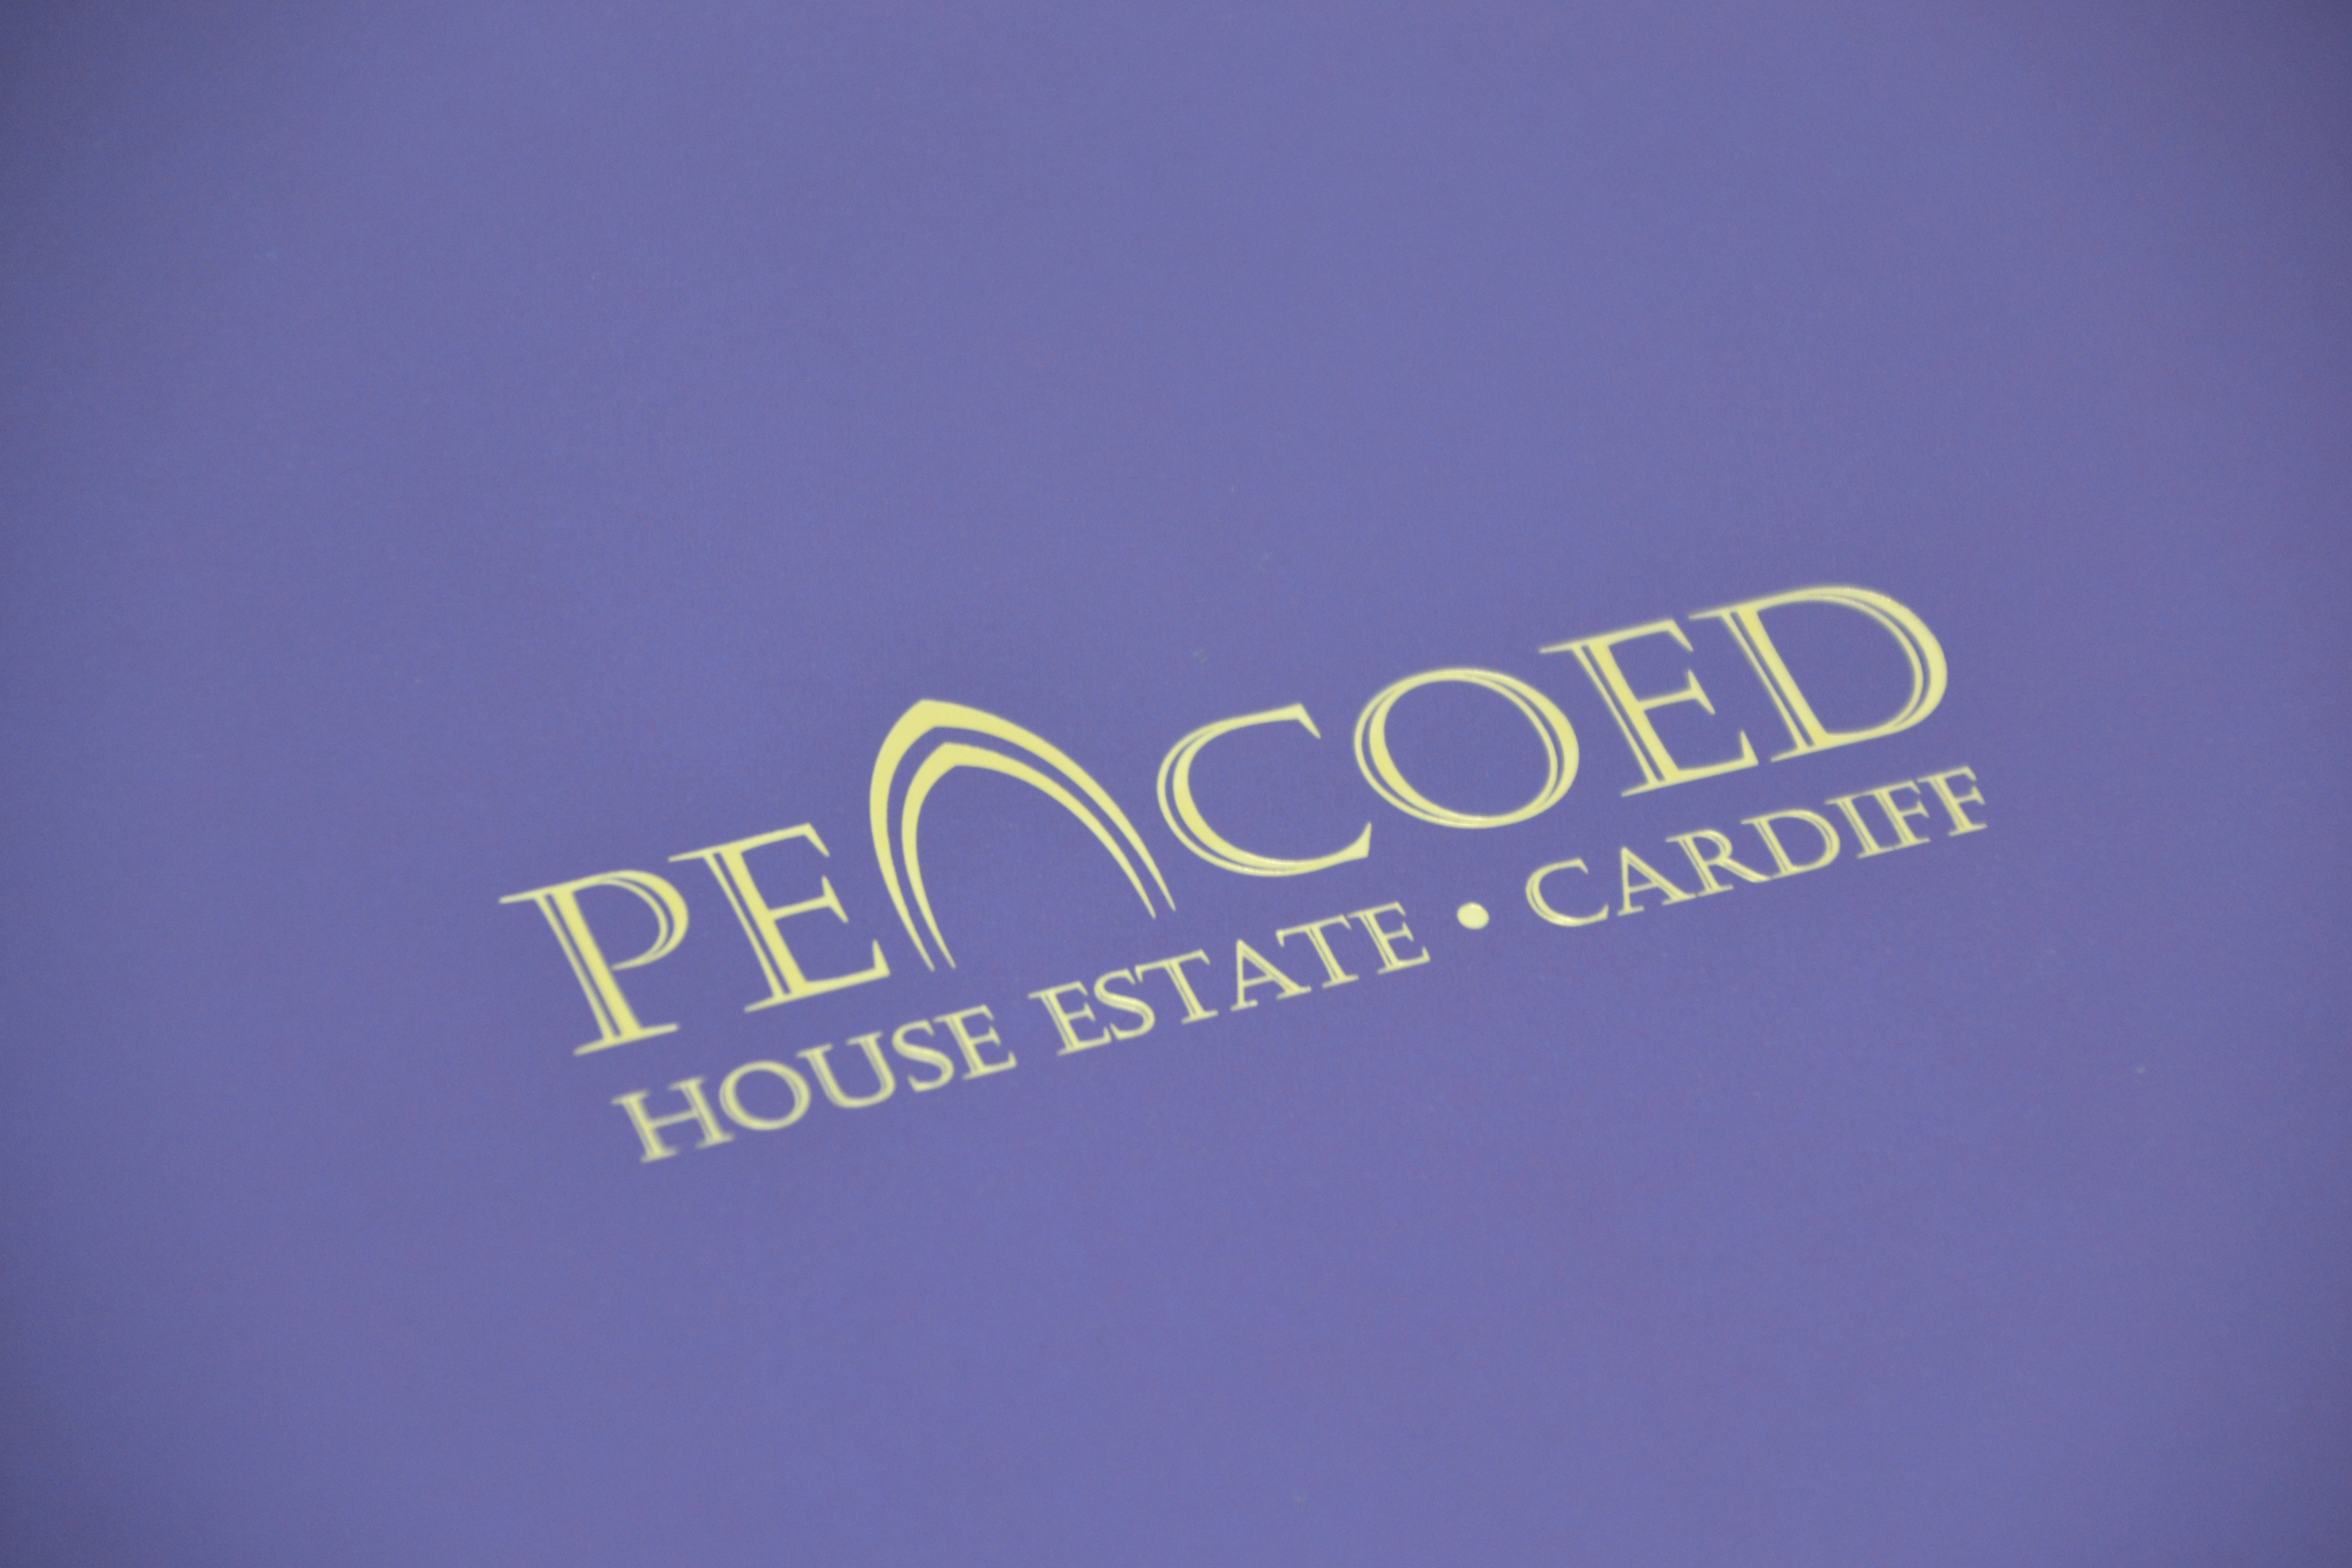 Pencoed House Brochure